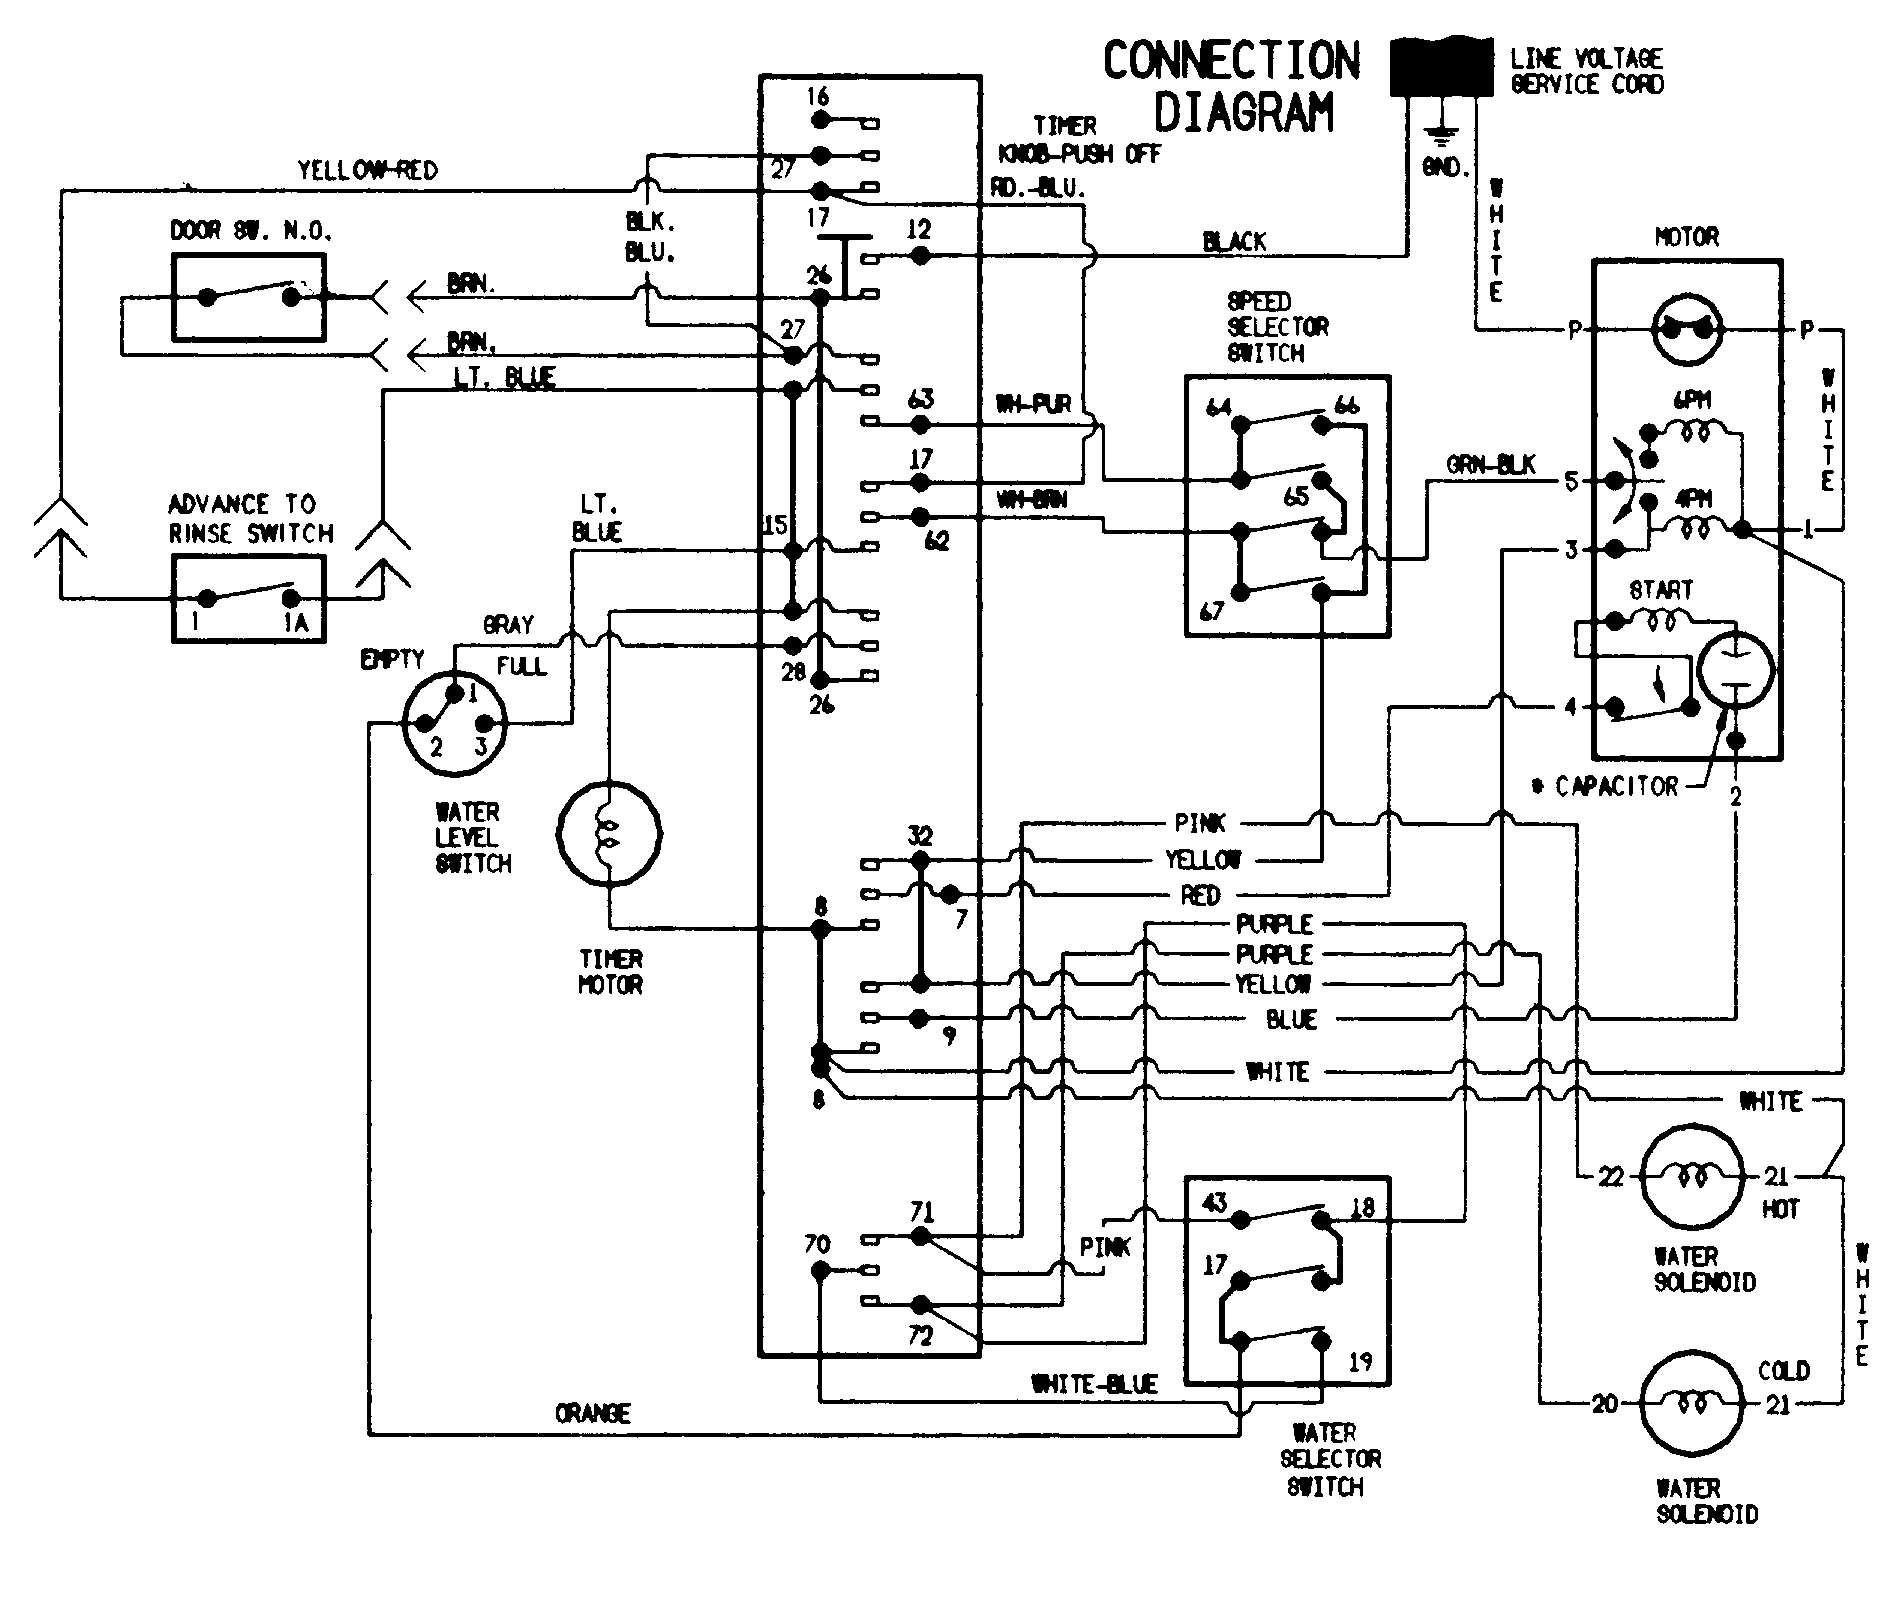 wiring diagram for a whirlpool hot water heater with Maytag Repair Schematic on Thermostat Wiring Schematics likewise Whirlpool Electric Water Heater Wiring Diagram in addition 1081000 further Kenmore Electric Water Heater Wiring Diagram further Maytag Repair Schematic.